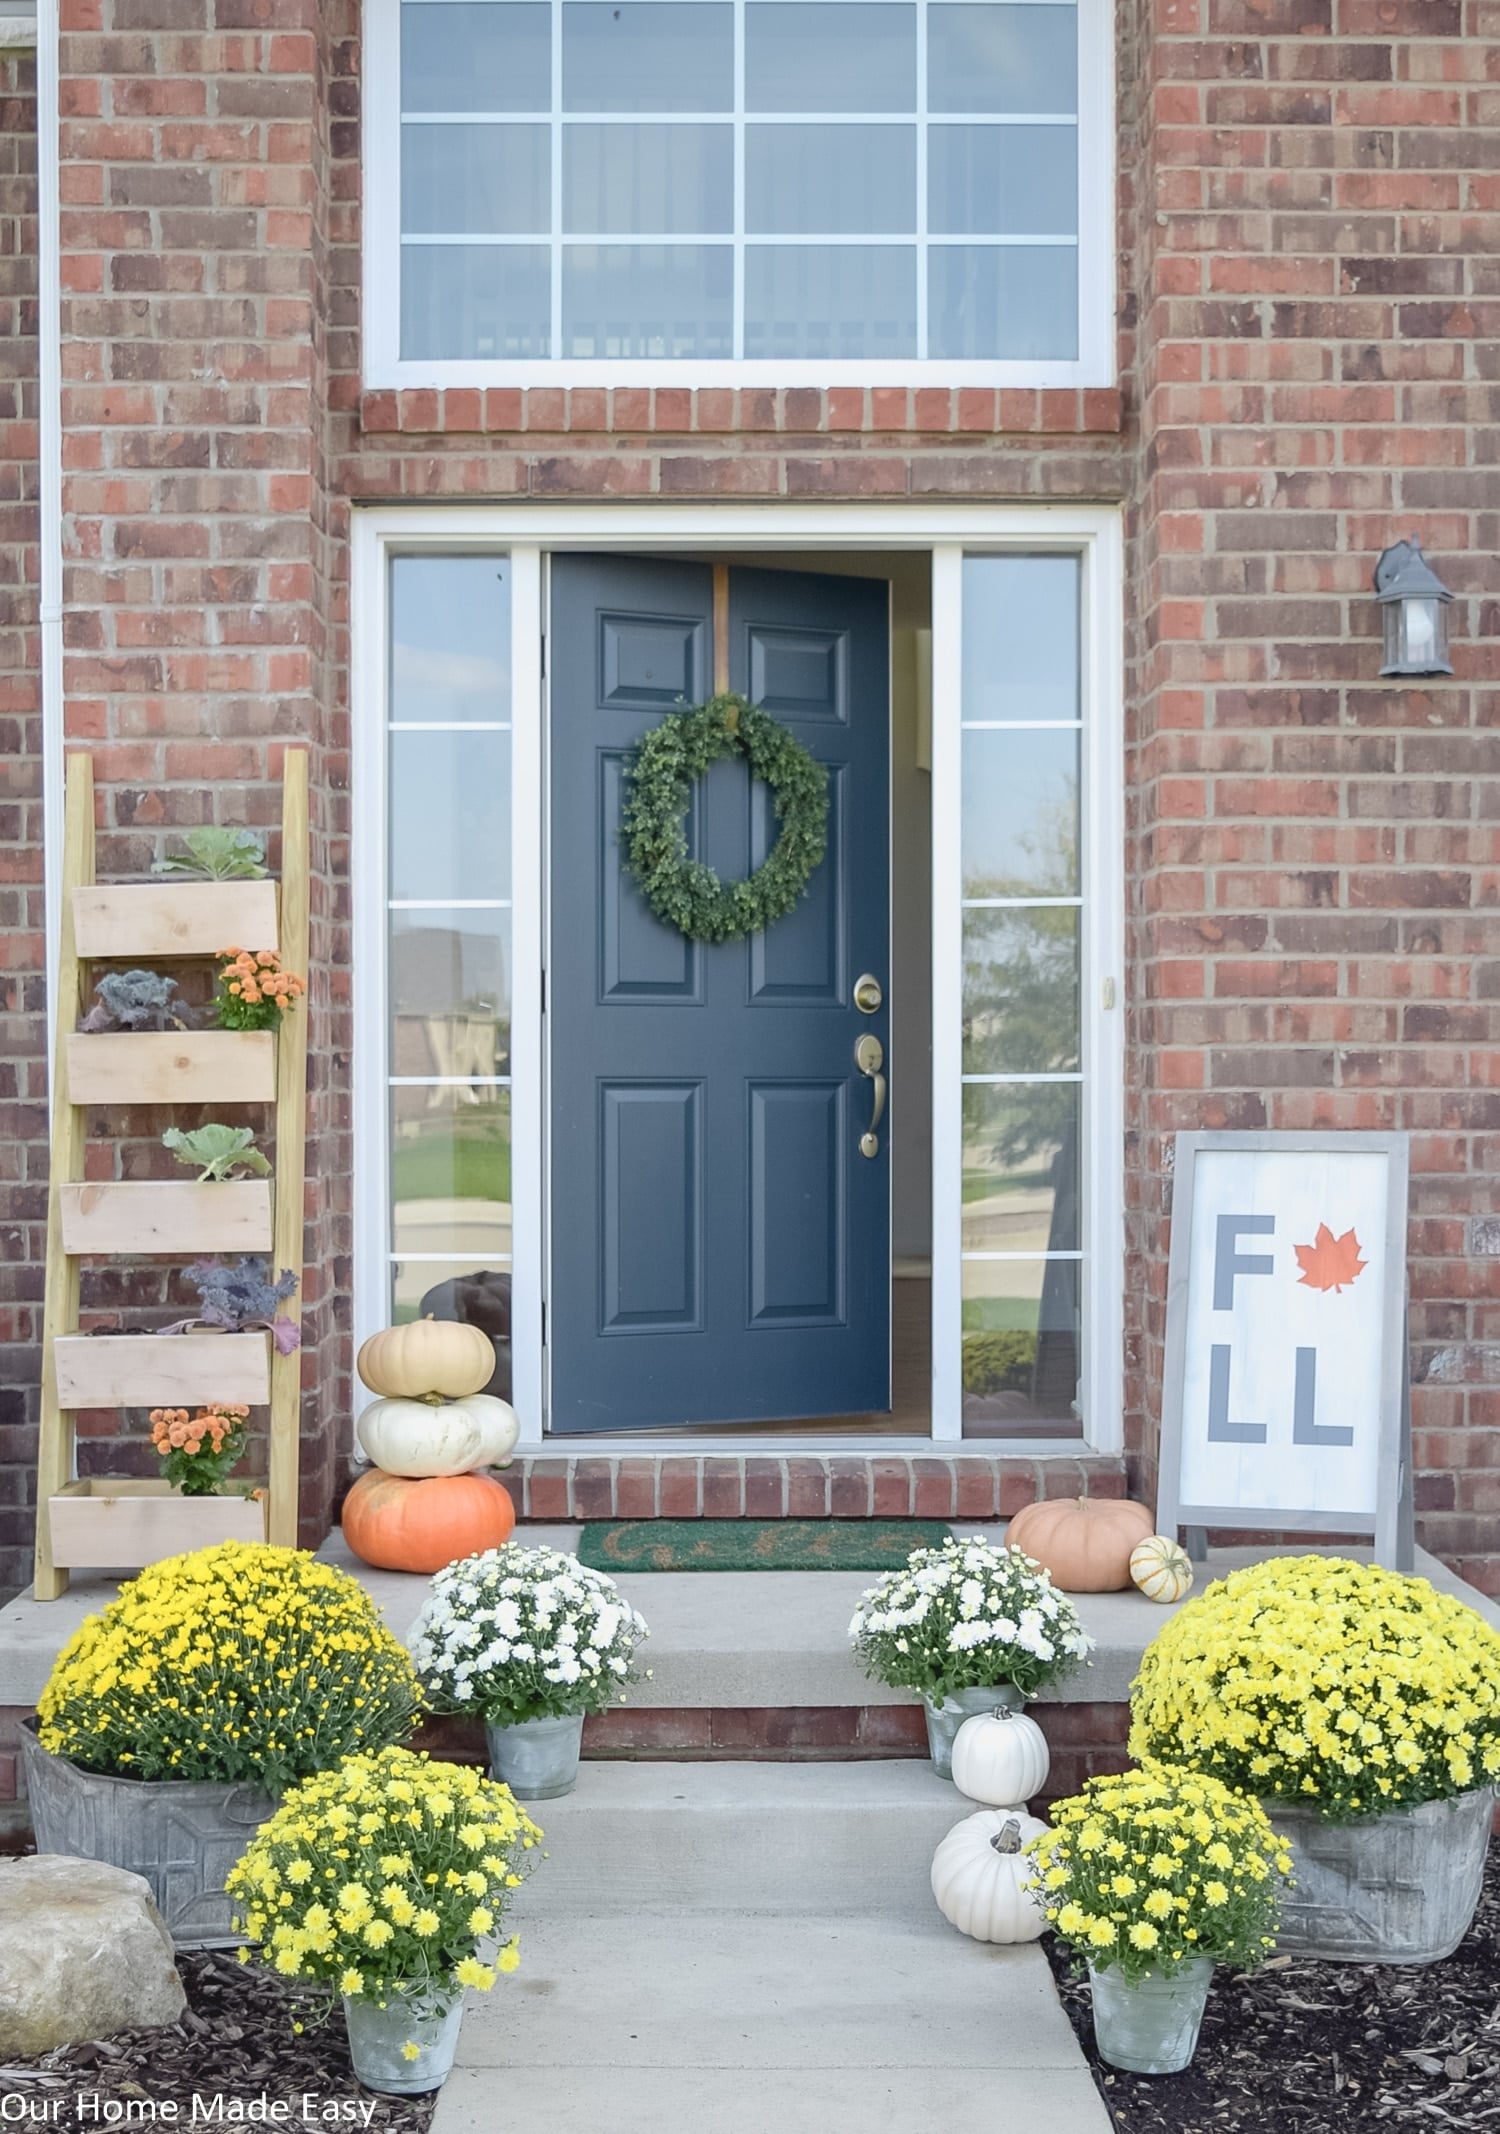 this fall themed front porch is decorated with yellow and white potted mums and harvest pumpkins